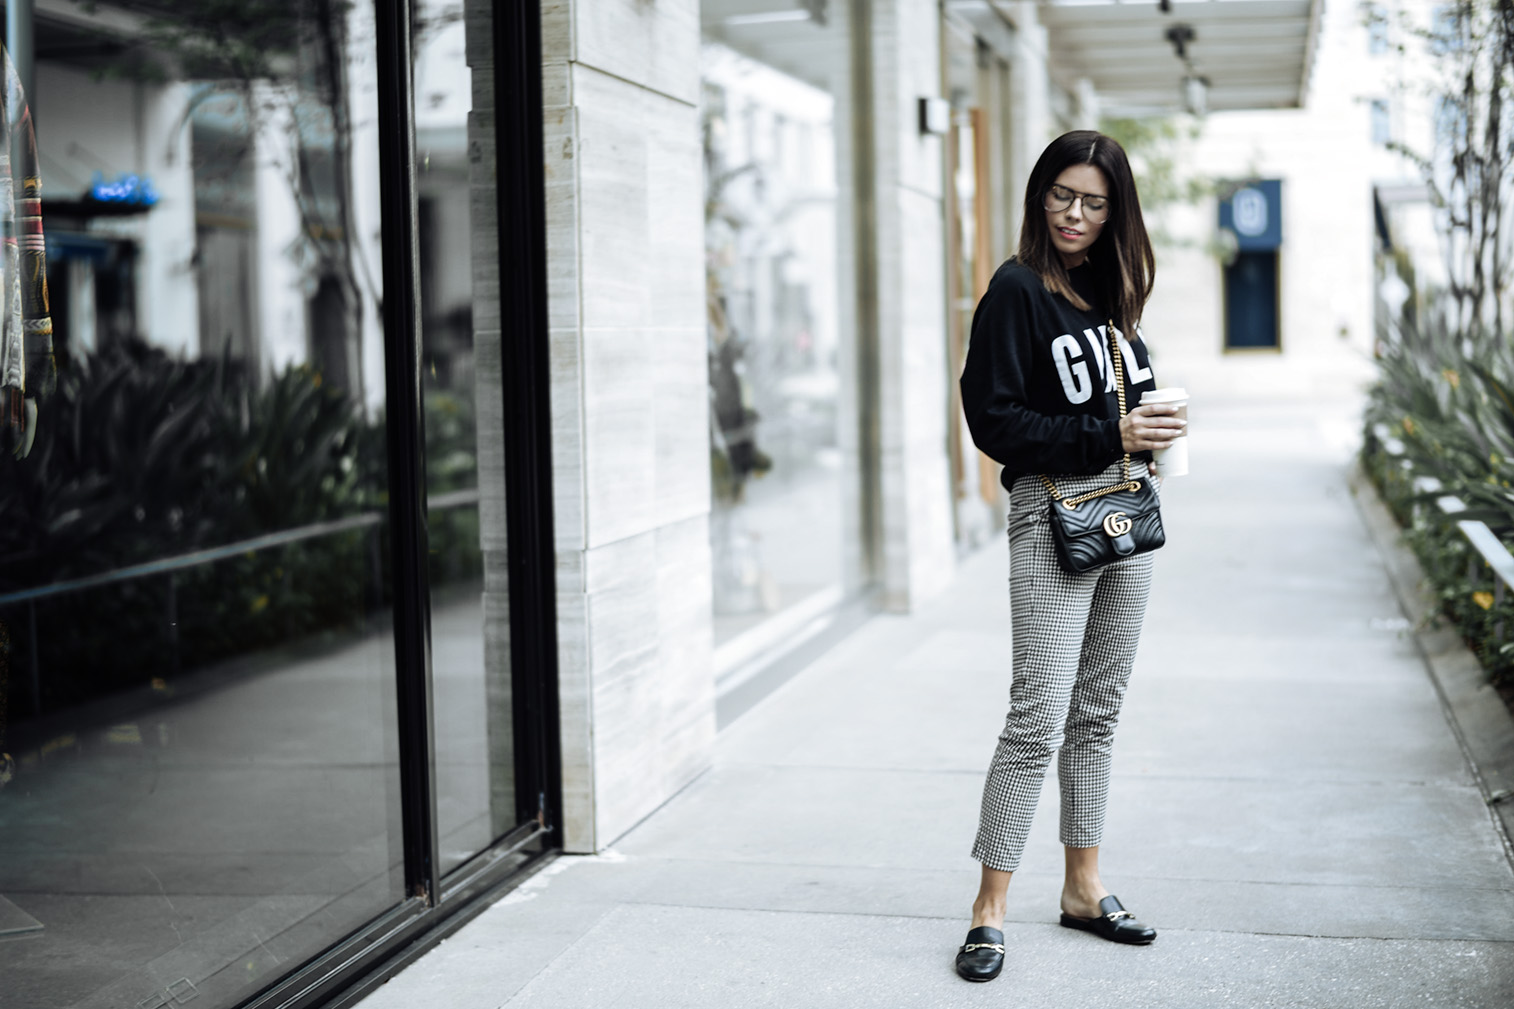 Tiffany Jais fashion and lifestyle blogger of Flaunt and Center | Houston fashion blogger | Streetstyle blog | Brunette The Label Girls sweatshirt {C/O For bloggers Only} | Gingham pants {Currently 50% off with code get $50} | Black readers | Gucci marmot bag in black |